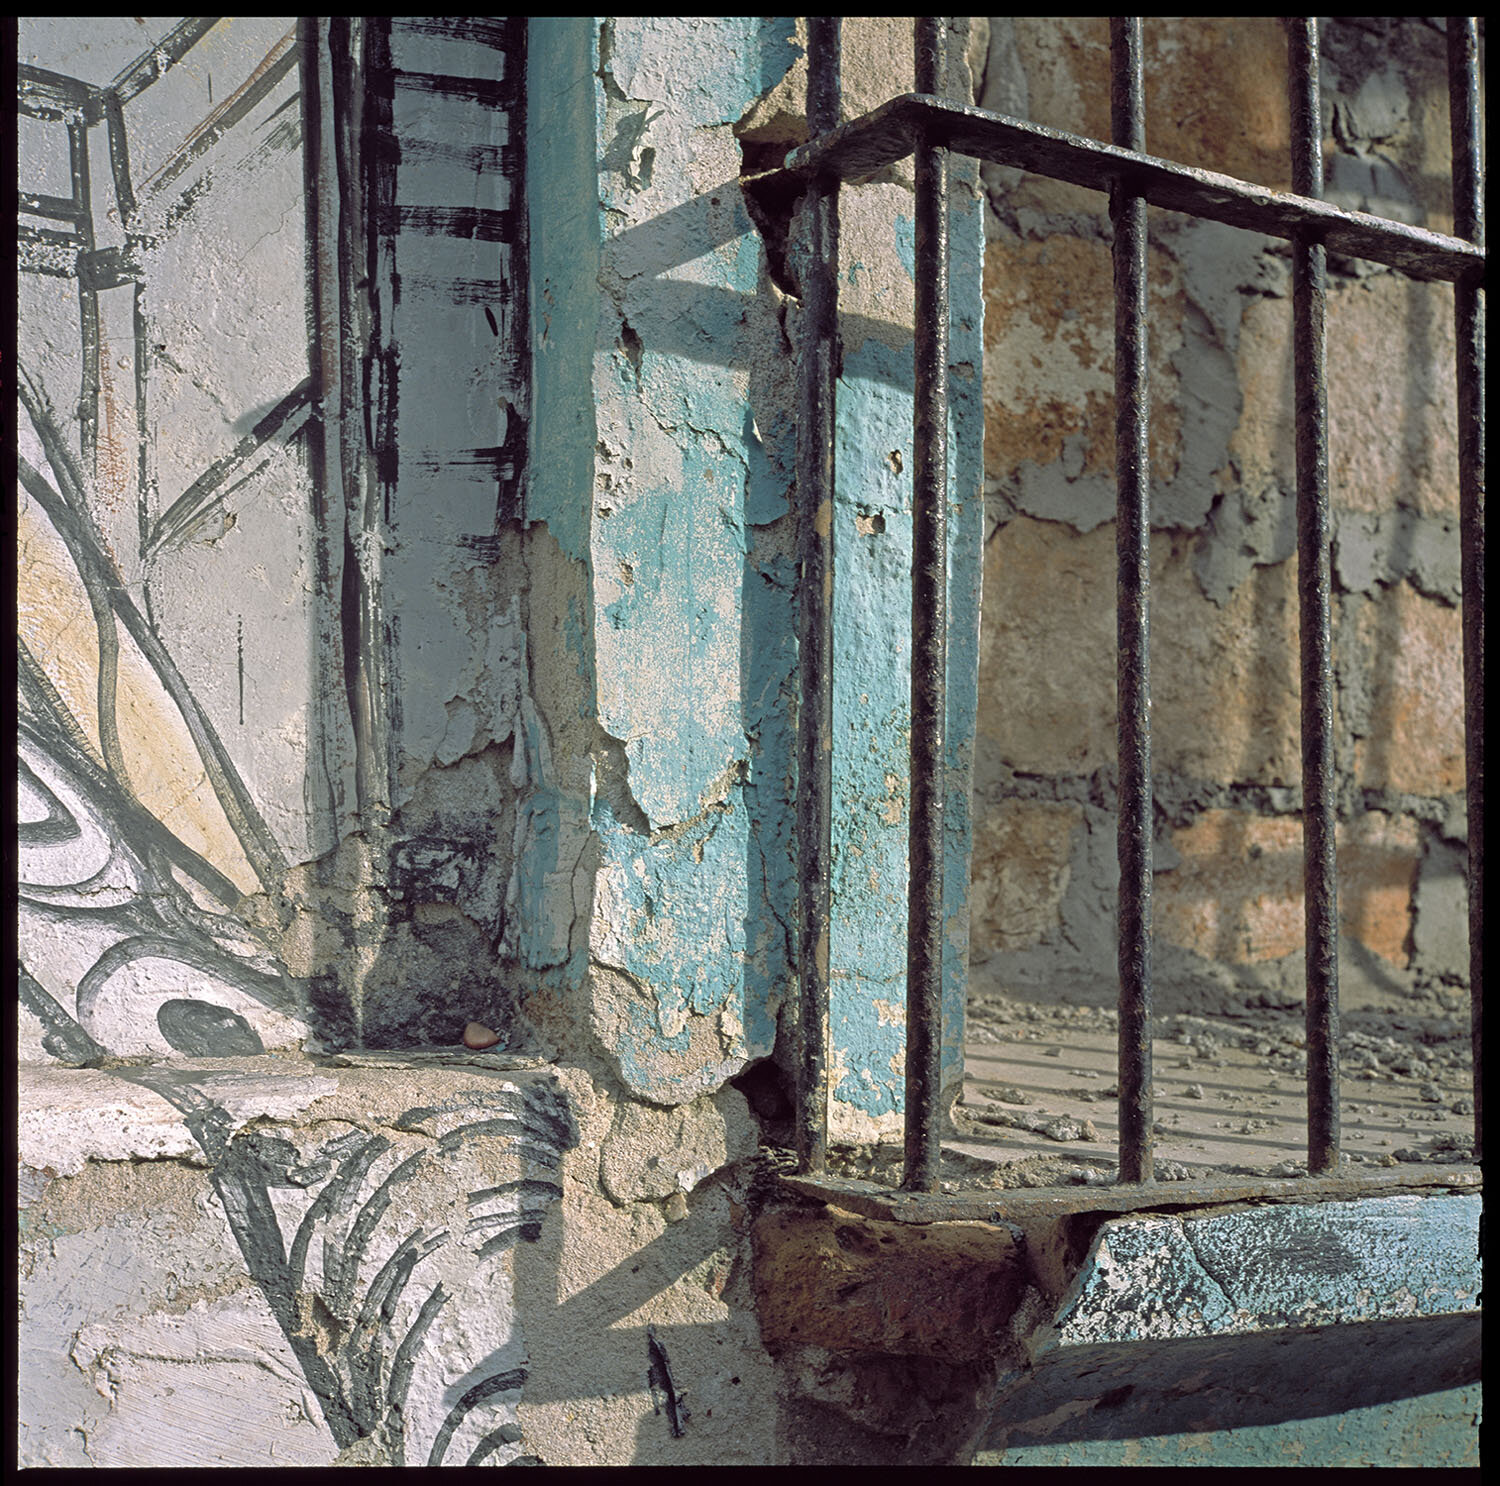 """Palimpsest - """"Palimpsest,"""" meaning layers upon layers, is a perfect way to describe photographer Keith Fred's texturally rich abstracts of the ever-changing soul of the urban environment."""